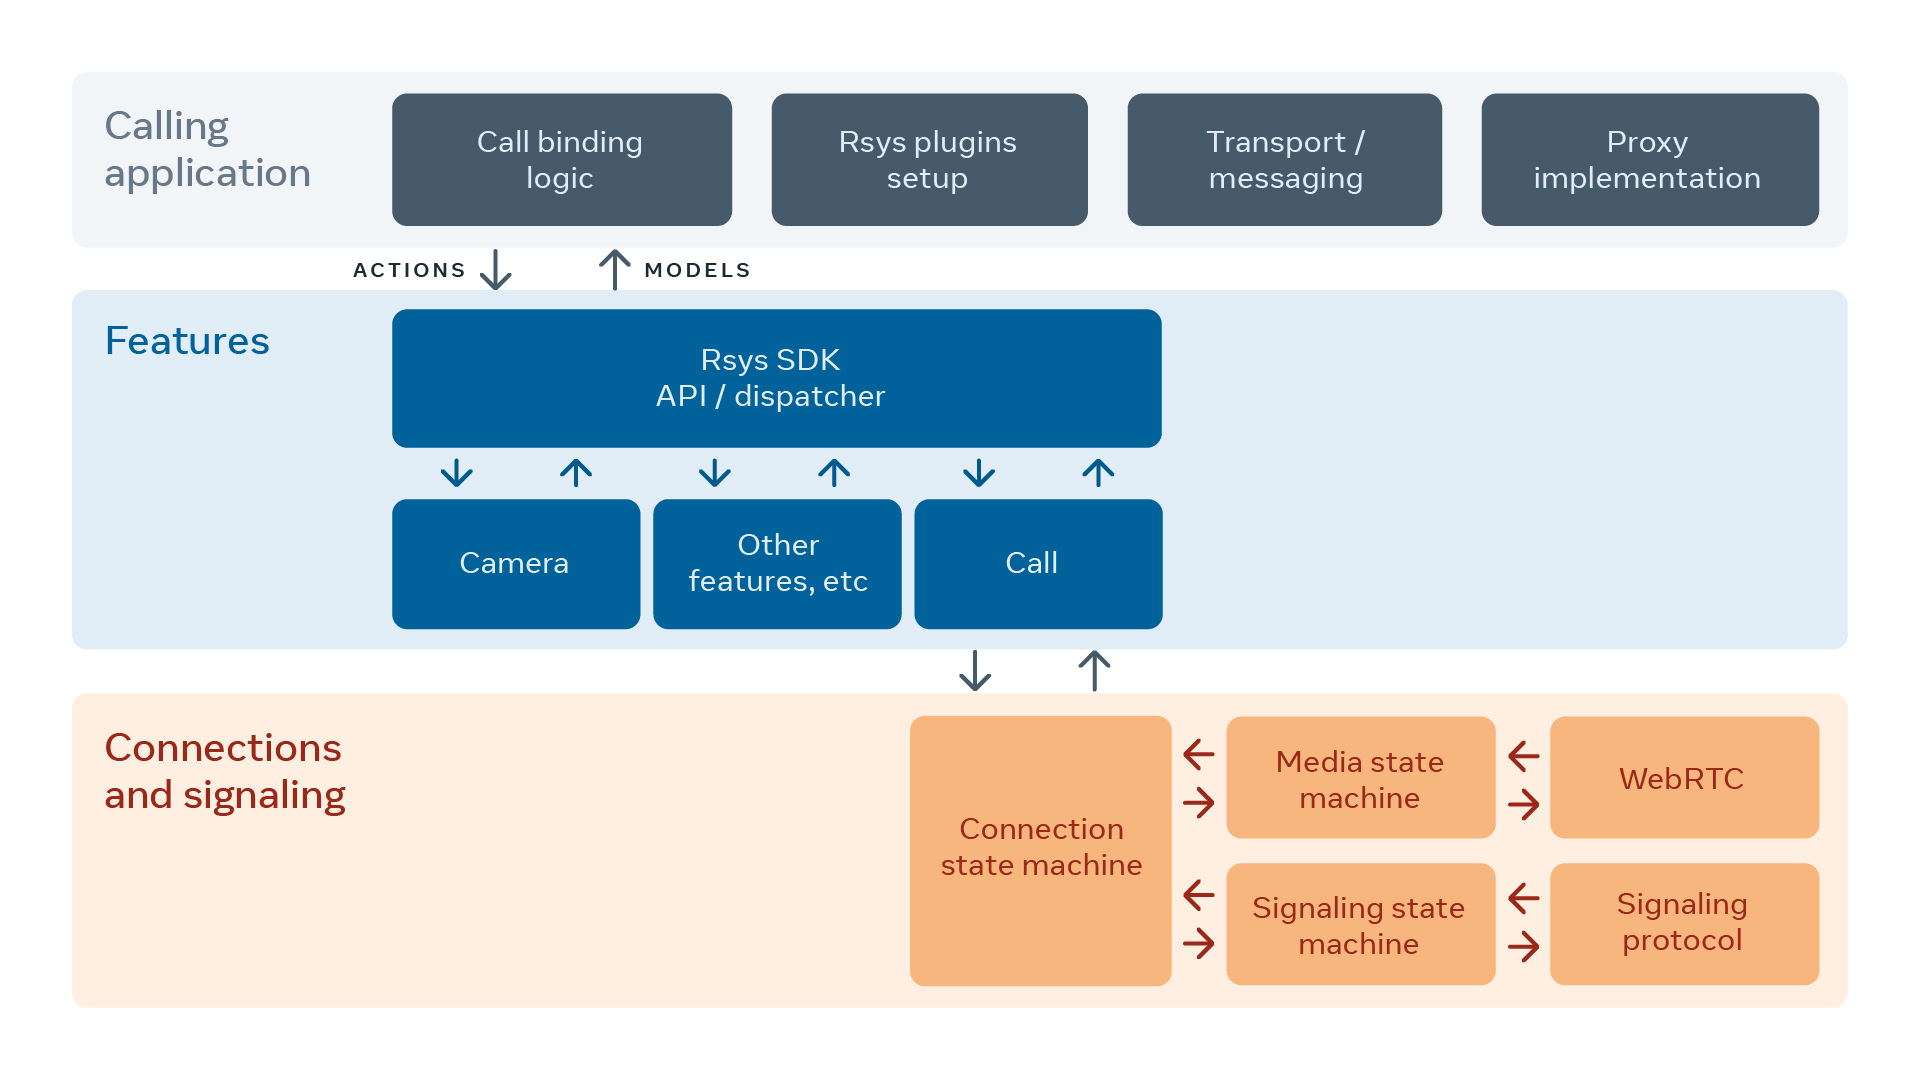 Rsys architecture for calling.